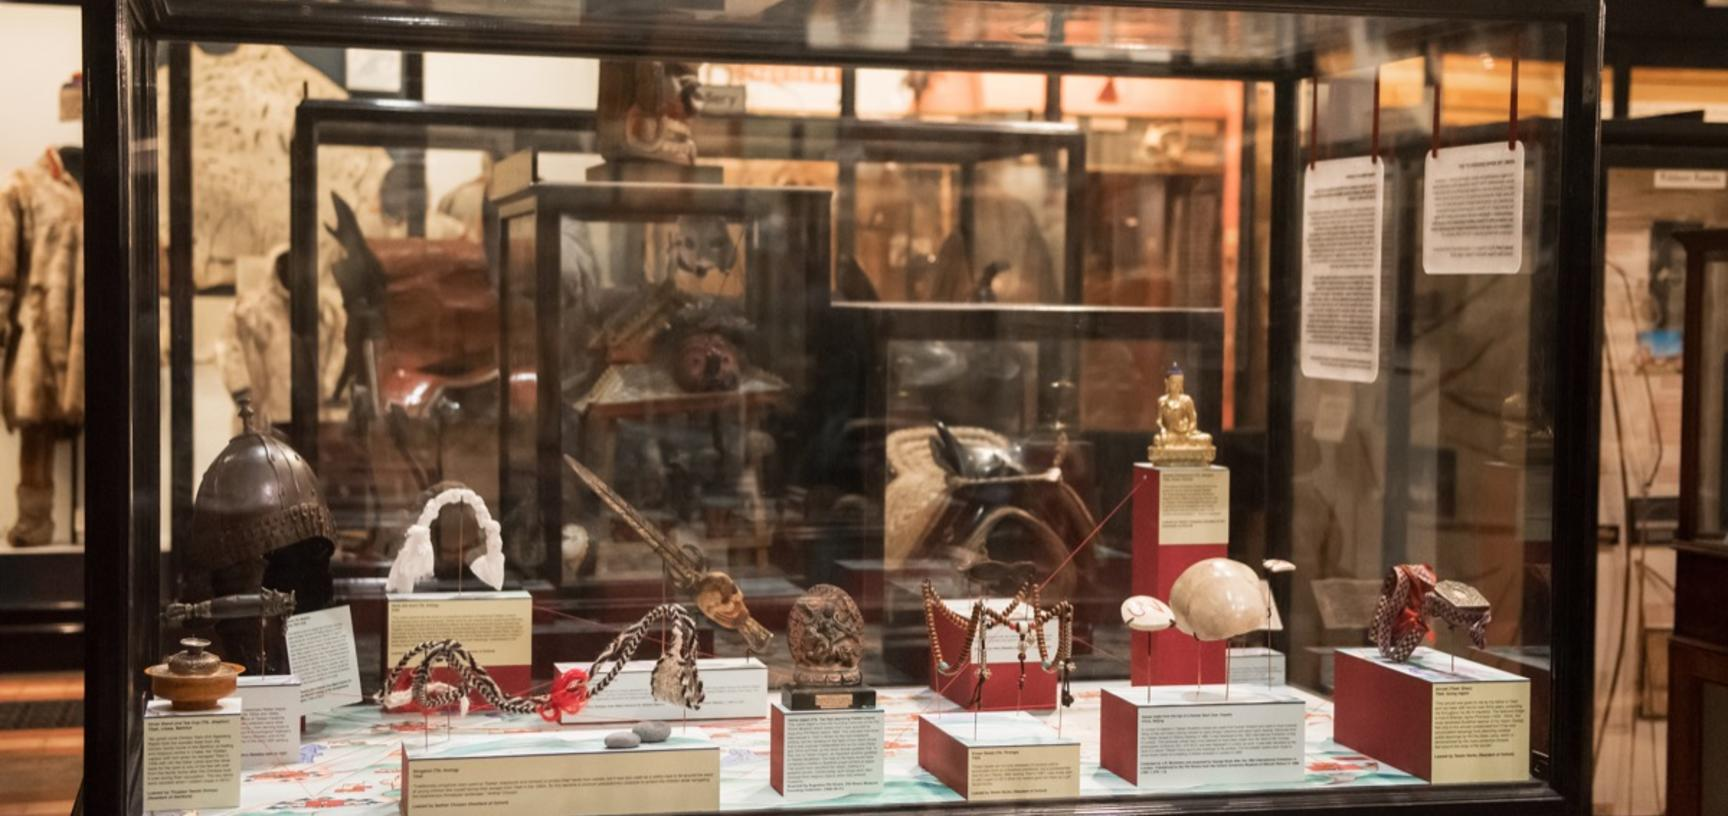 'Tibetan Objects in Transition', Pitt Rivers Museum, University of Oxford, 31 August 2018 to 25 January 2019. (Copyright Pitt Rivers Museum, University of Oxford)